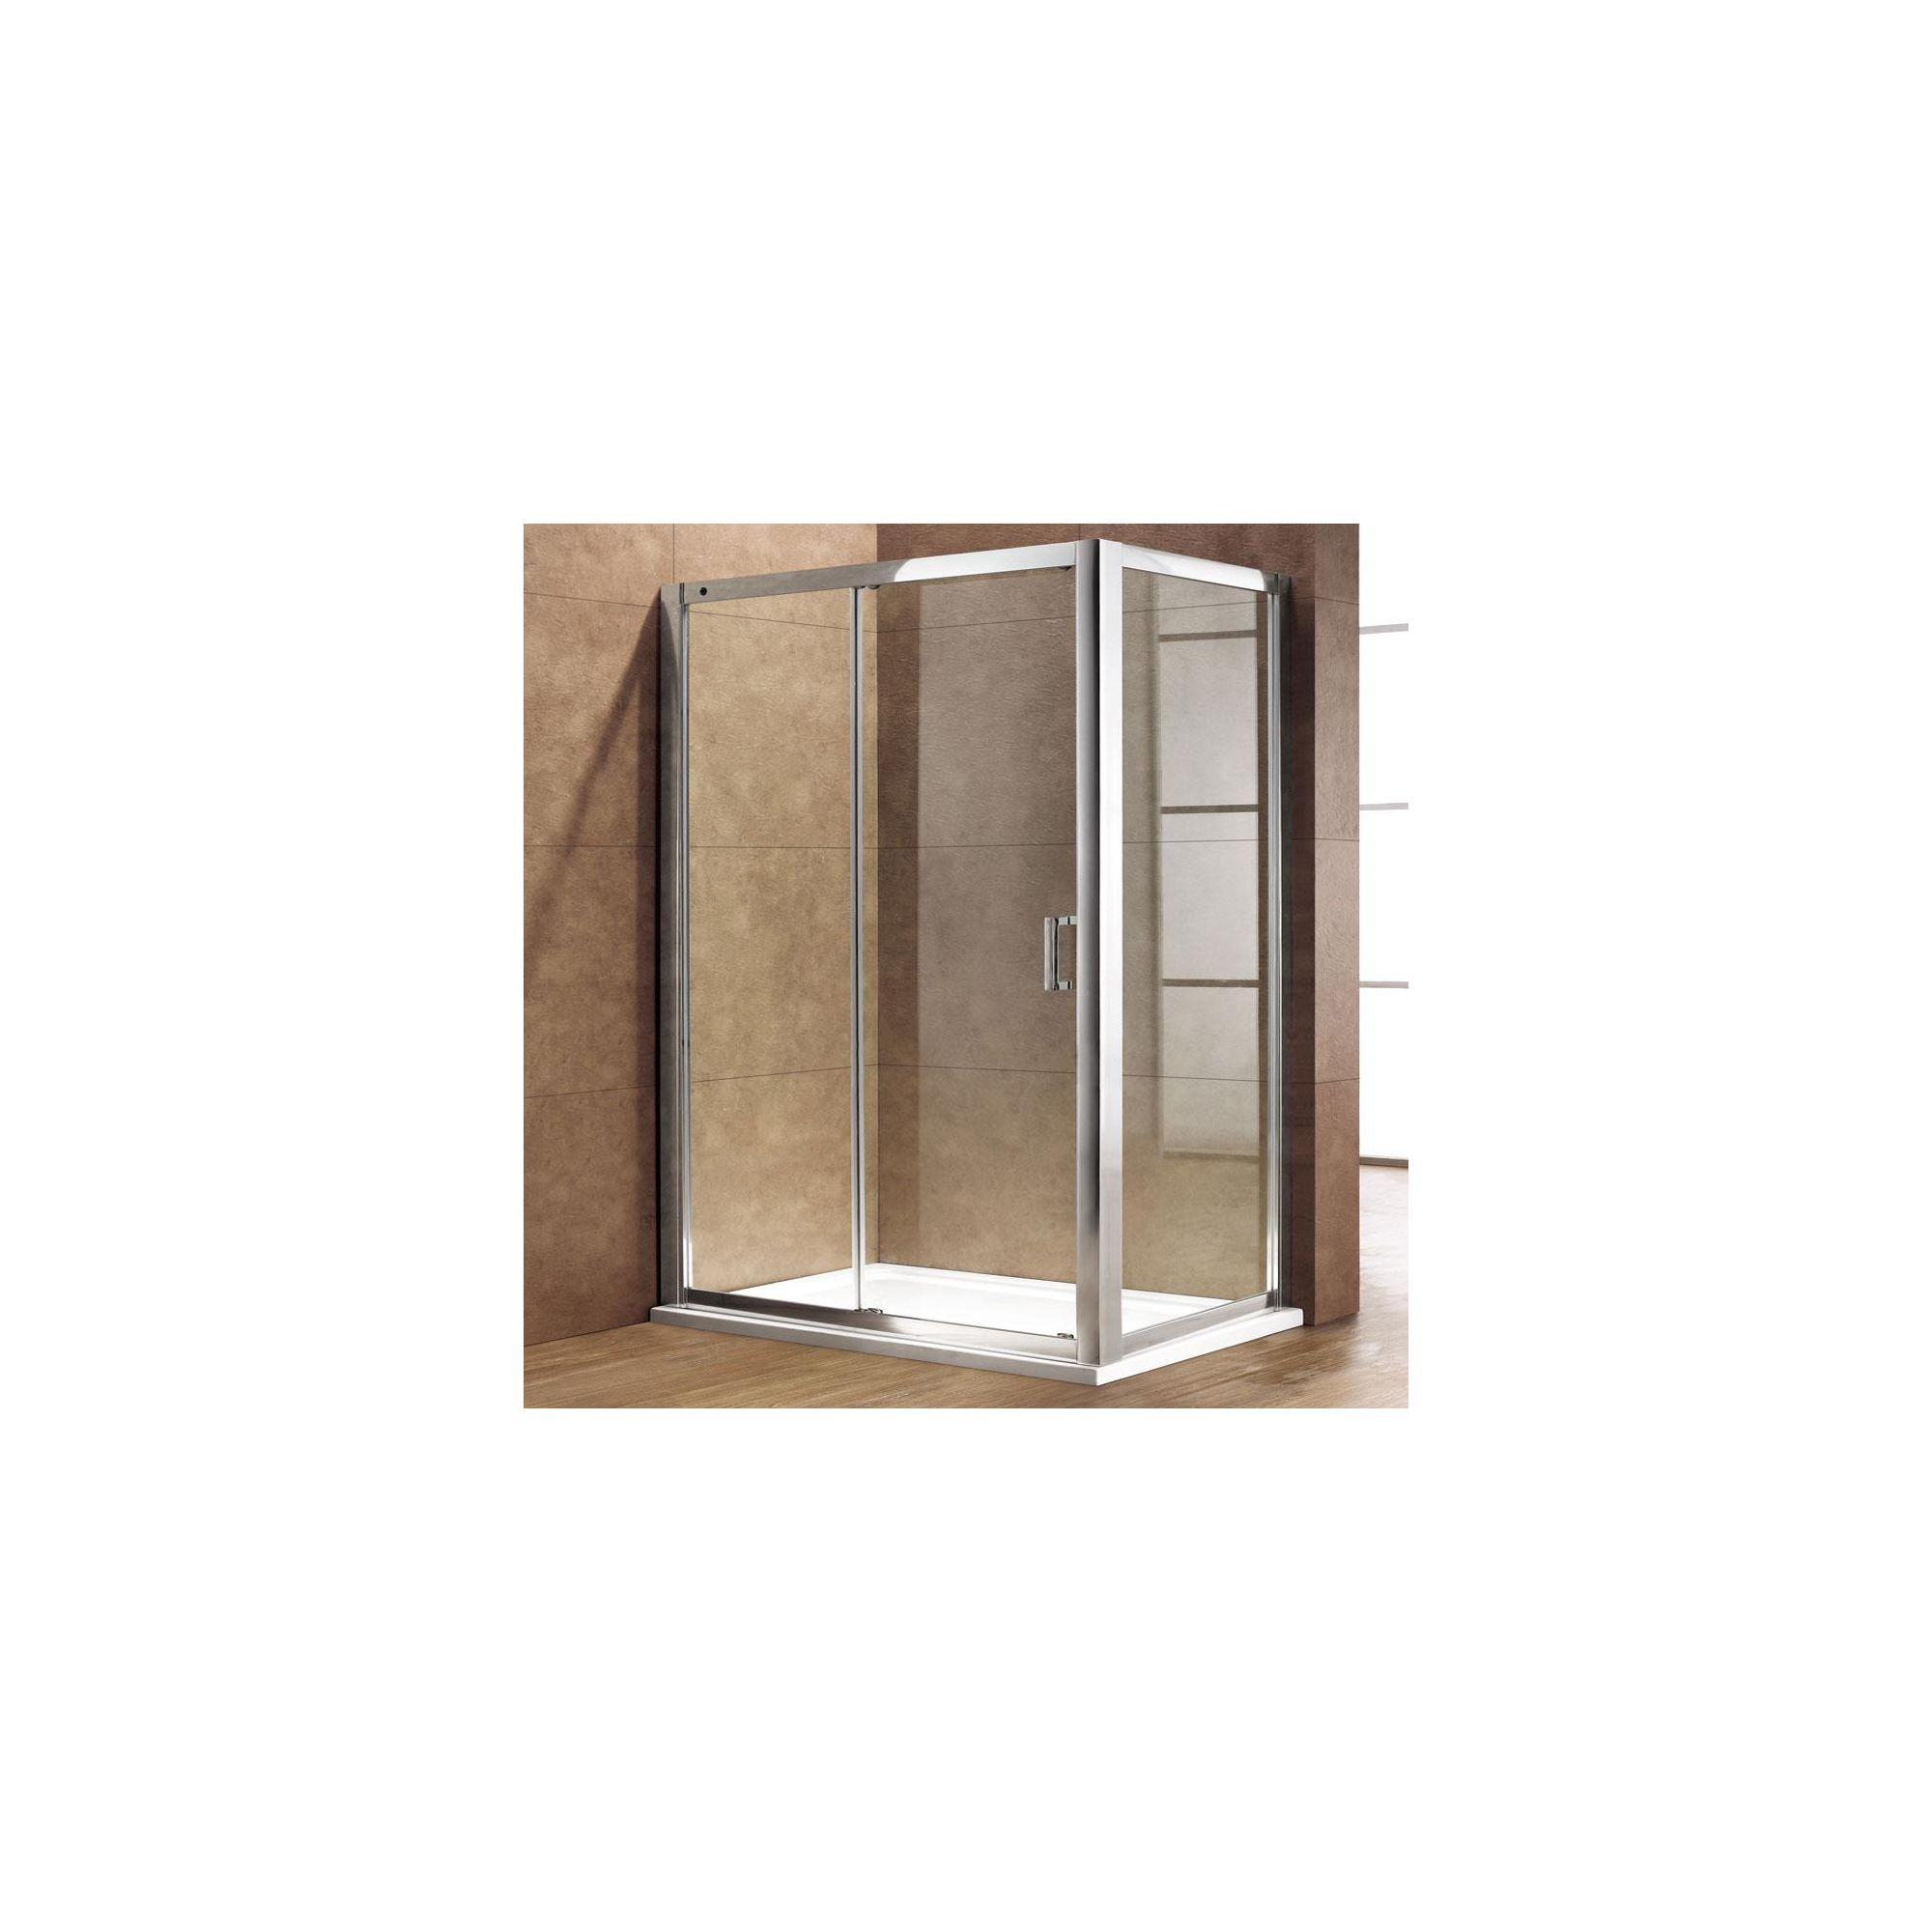 Duchy Premium Single Sliding Door Shower Enclosure, 1100mm x 700mm, 8mm Glass, Low Profile Tray at Tesco Direct